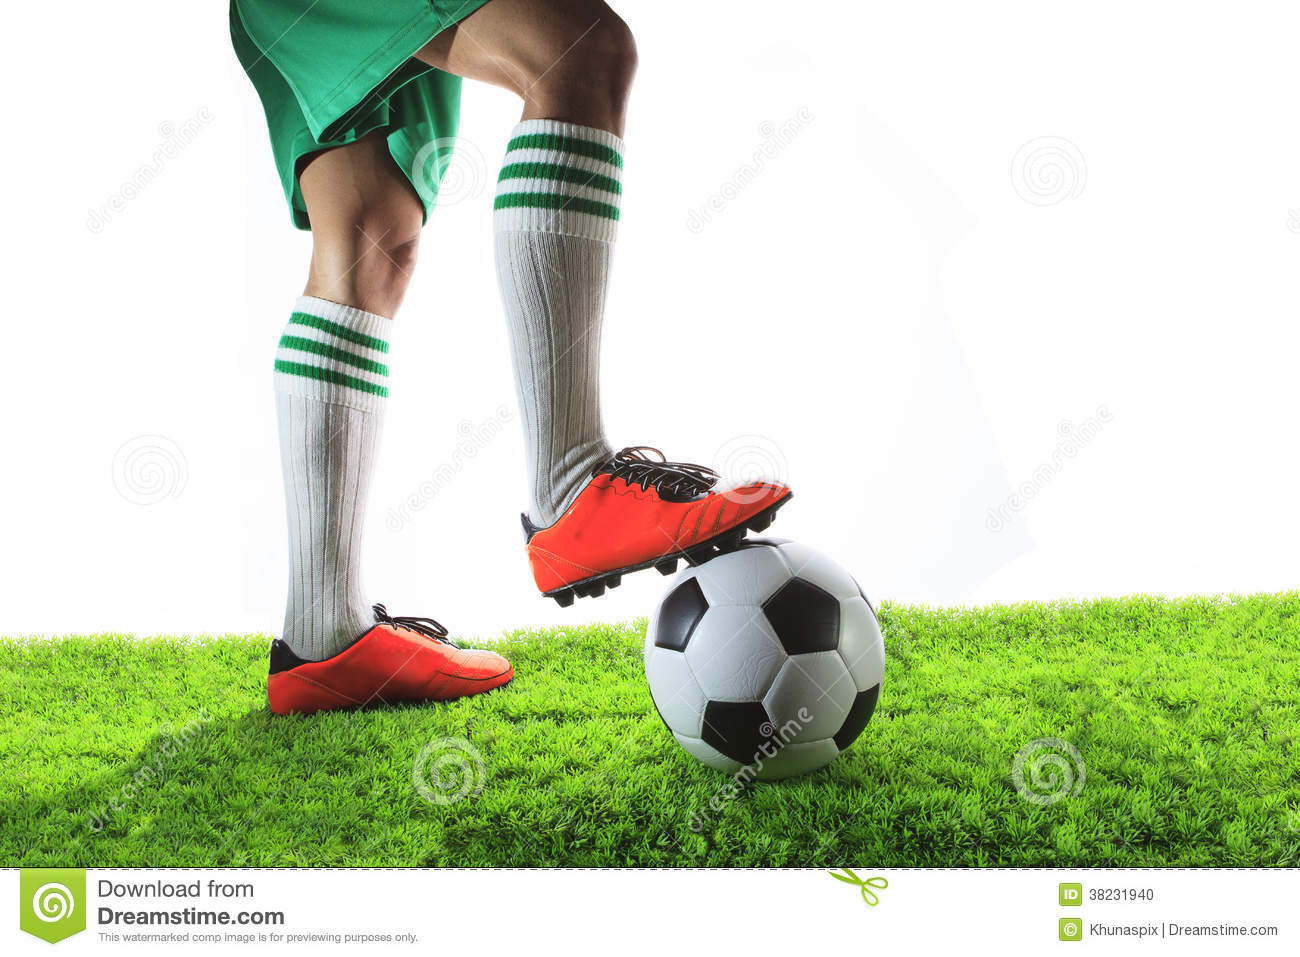 how to find space in soccer